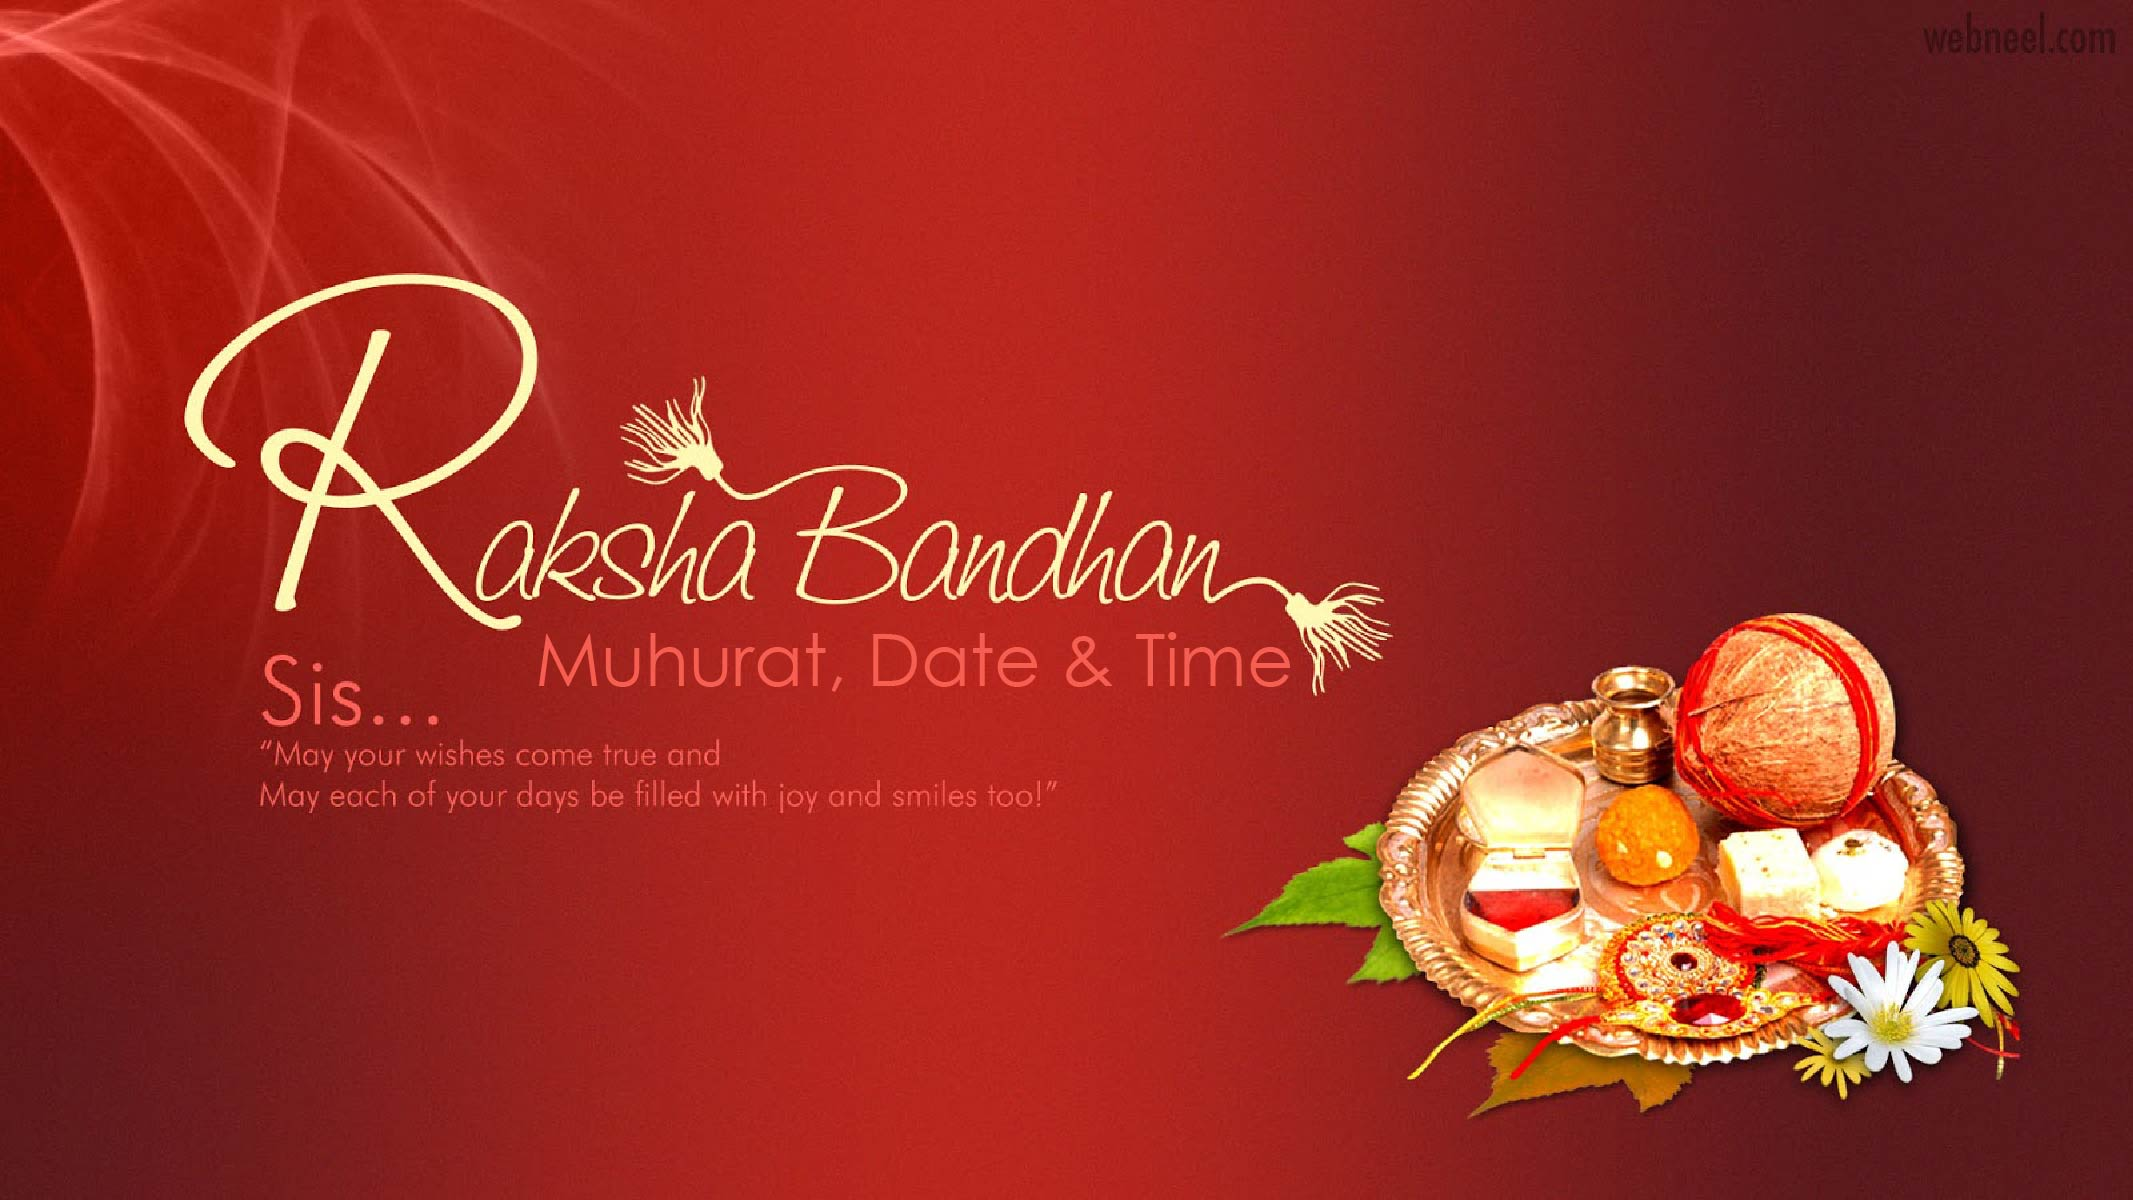 Raksha Bandhan 2019 Significance, Celebration, Wishes, Messages, Quotes